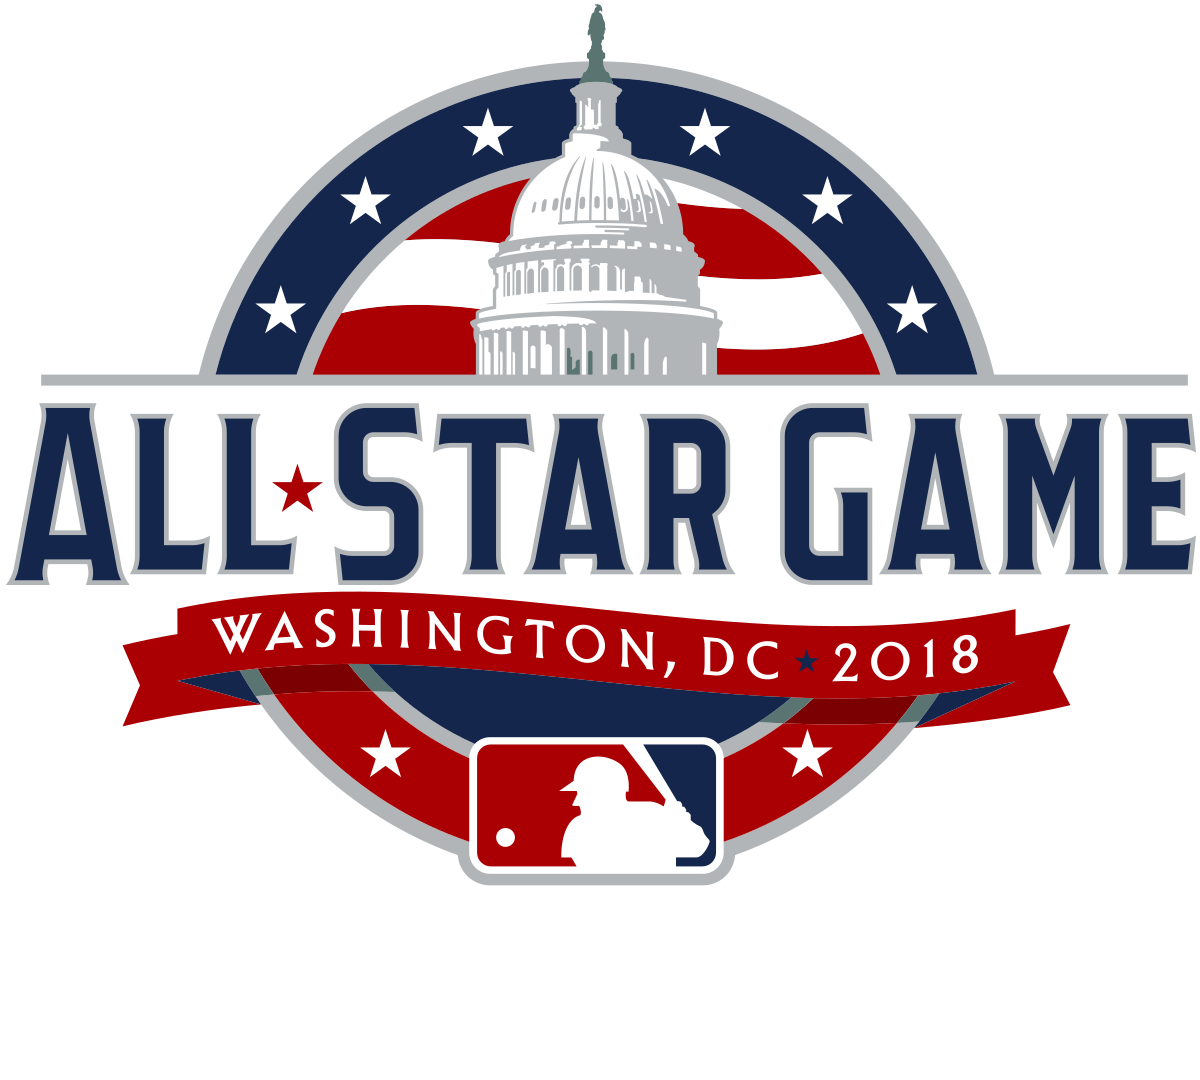 All Star Game Logo 2018 PNG Image